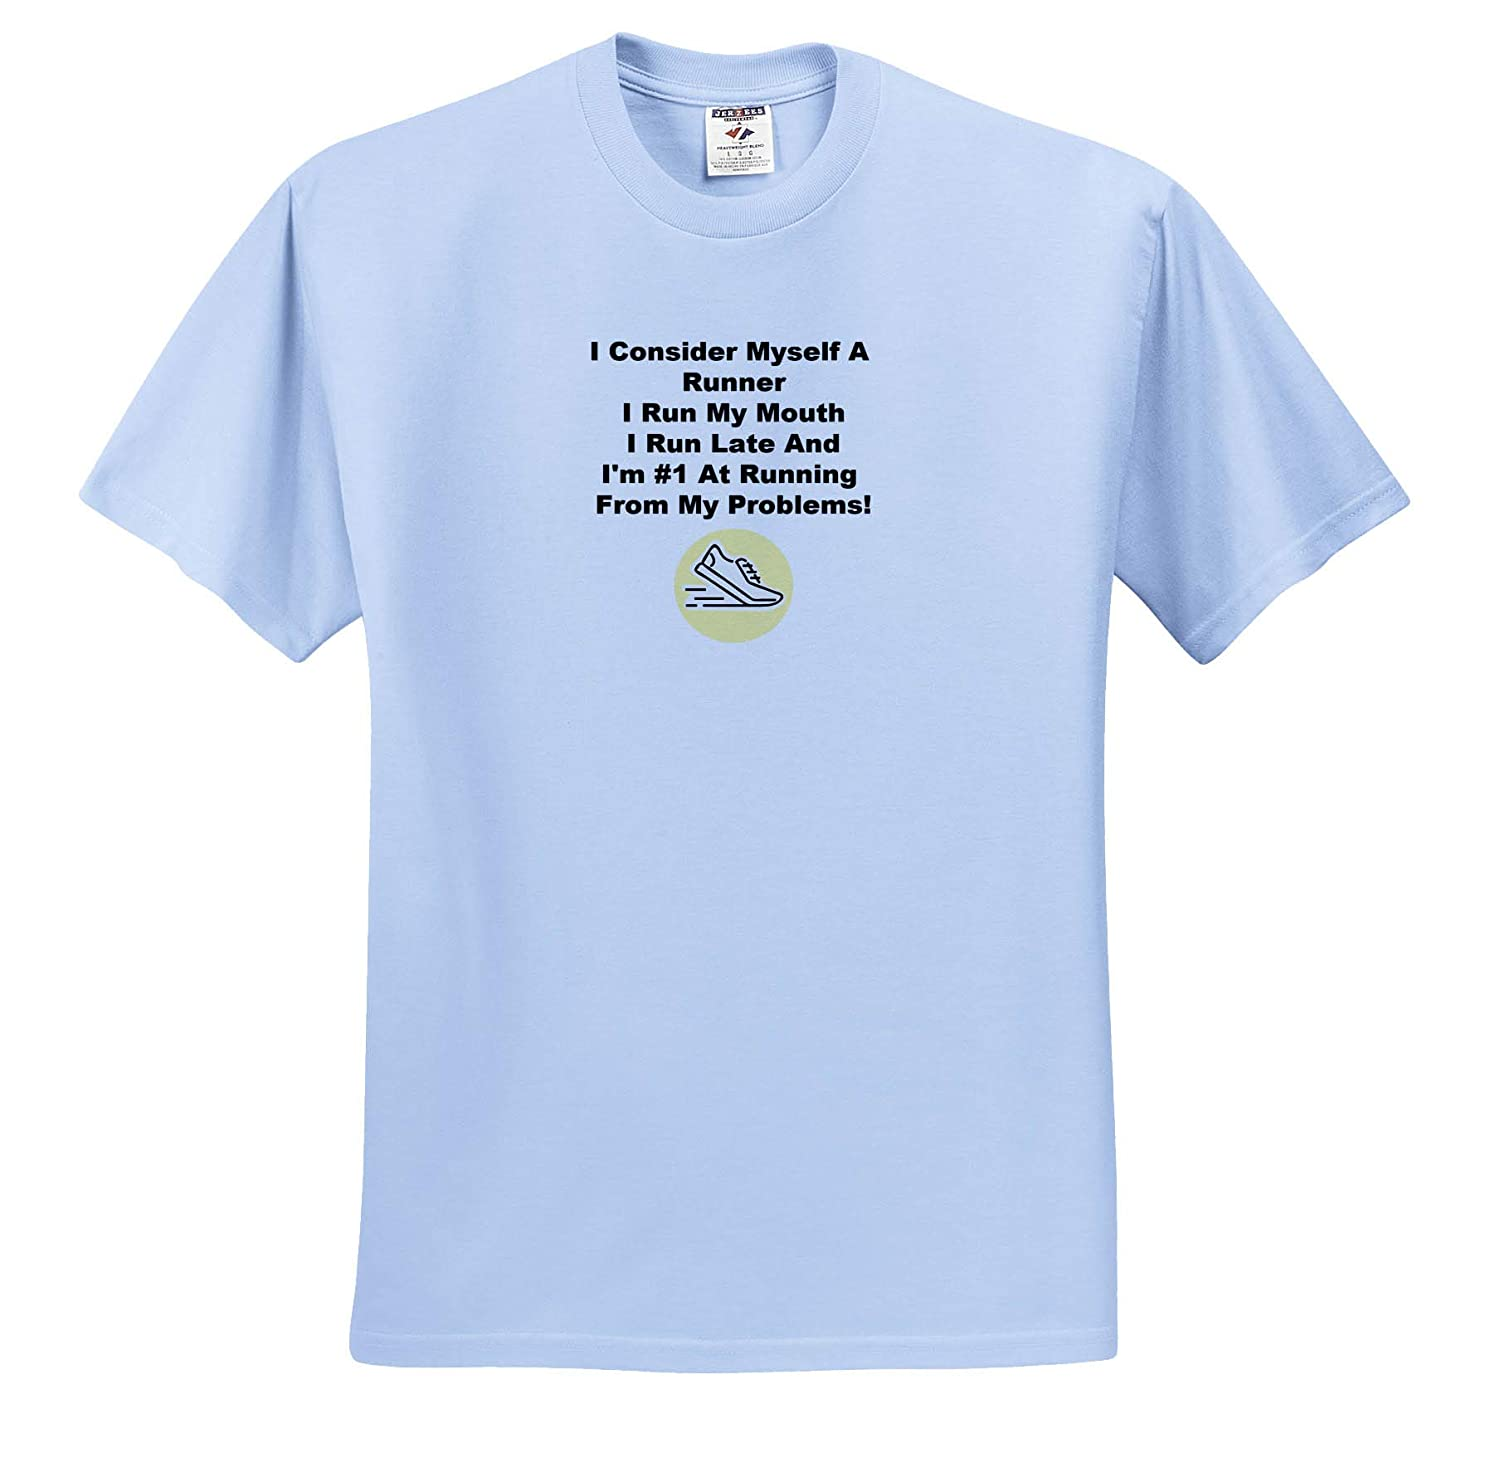 3dRose Carrie Quote Image Adult T-Shirt XL ts/_318602 Quote I Consider Myself A Runner I Run My Mouth I Run Late